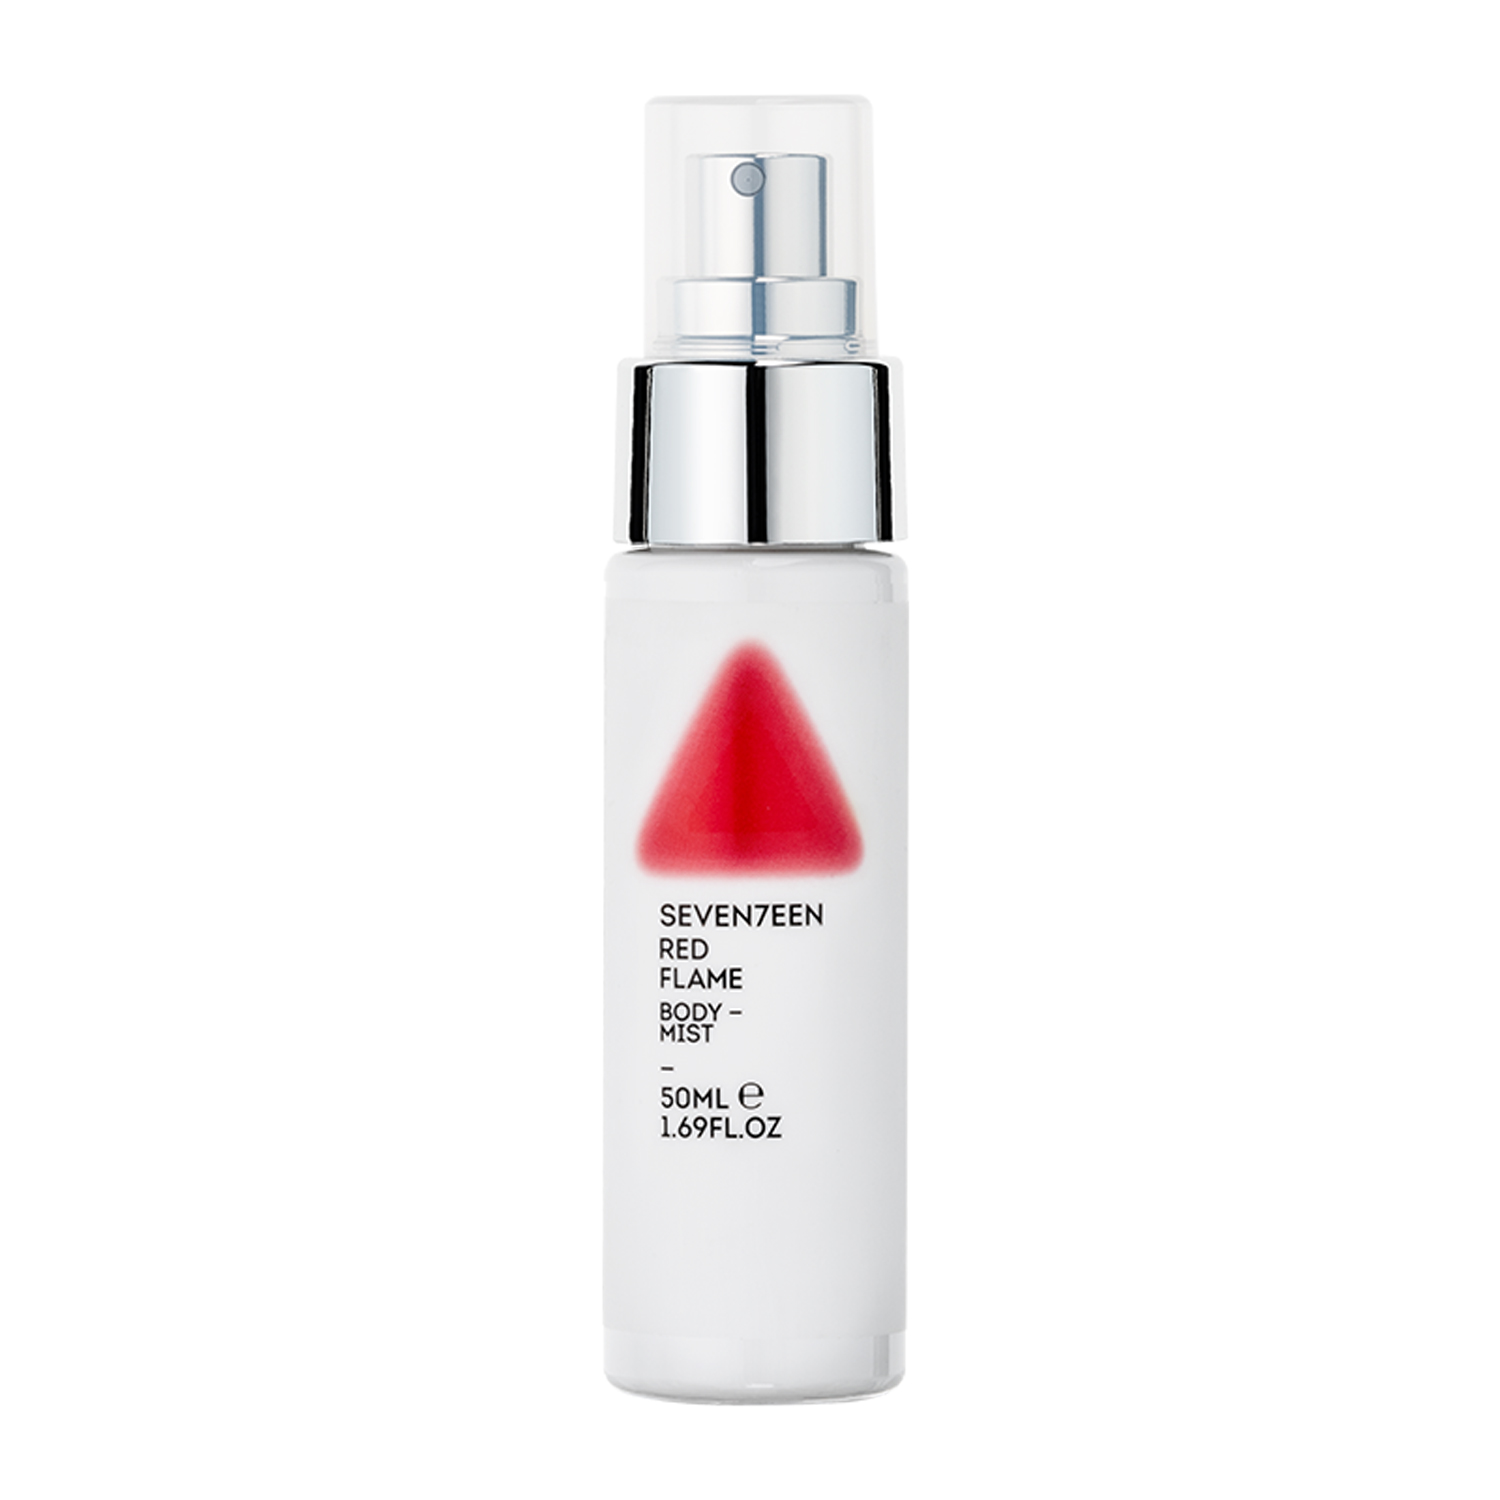 Red Flame Body Mist 50ml